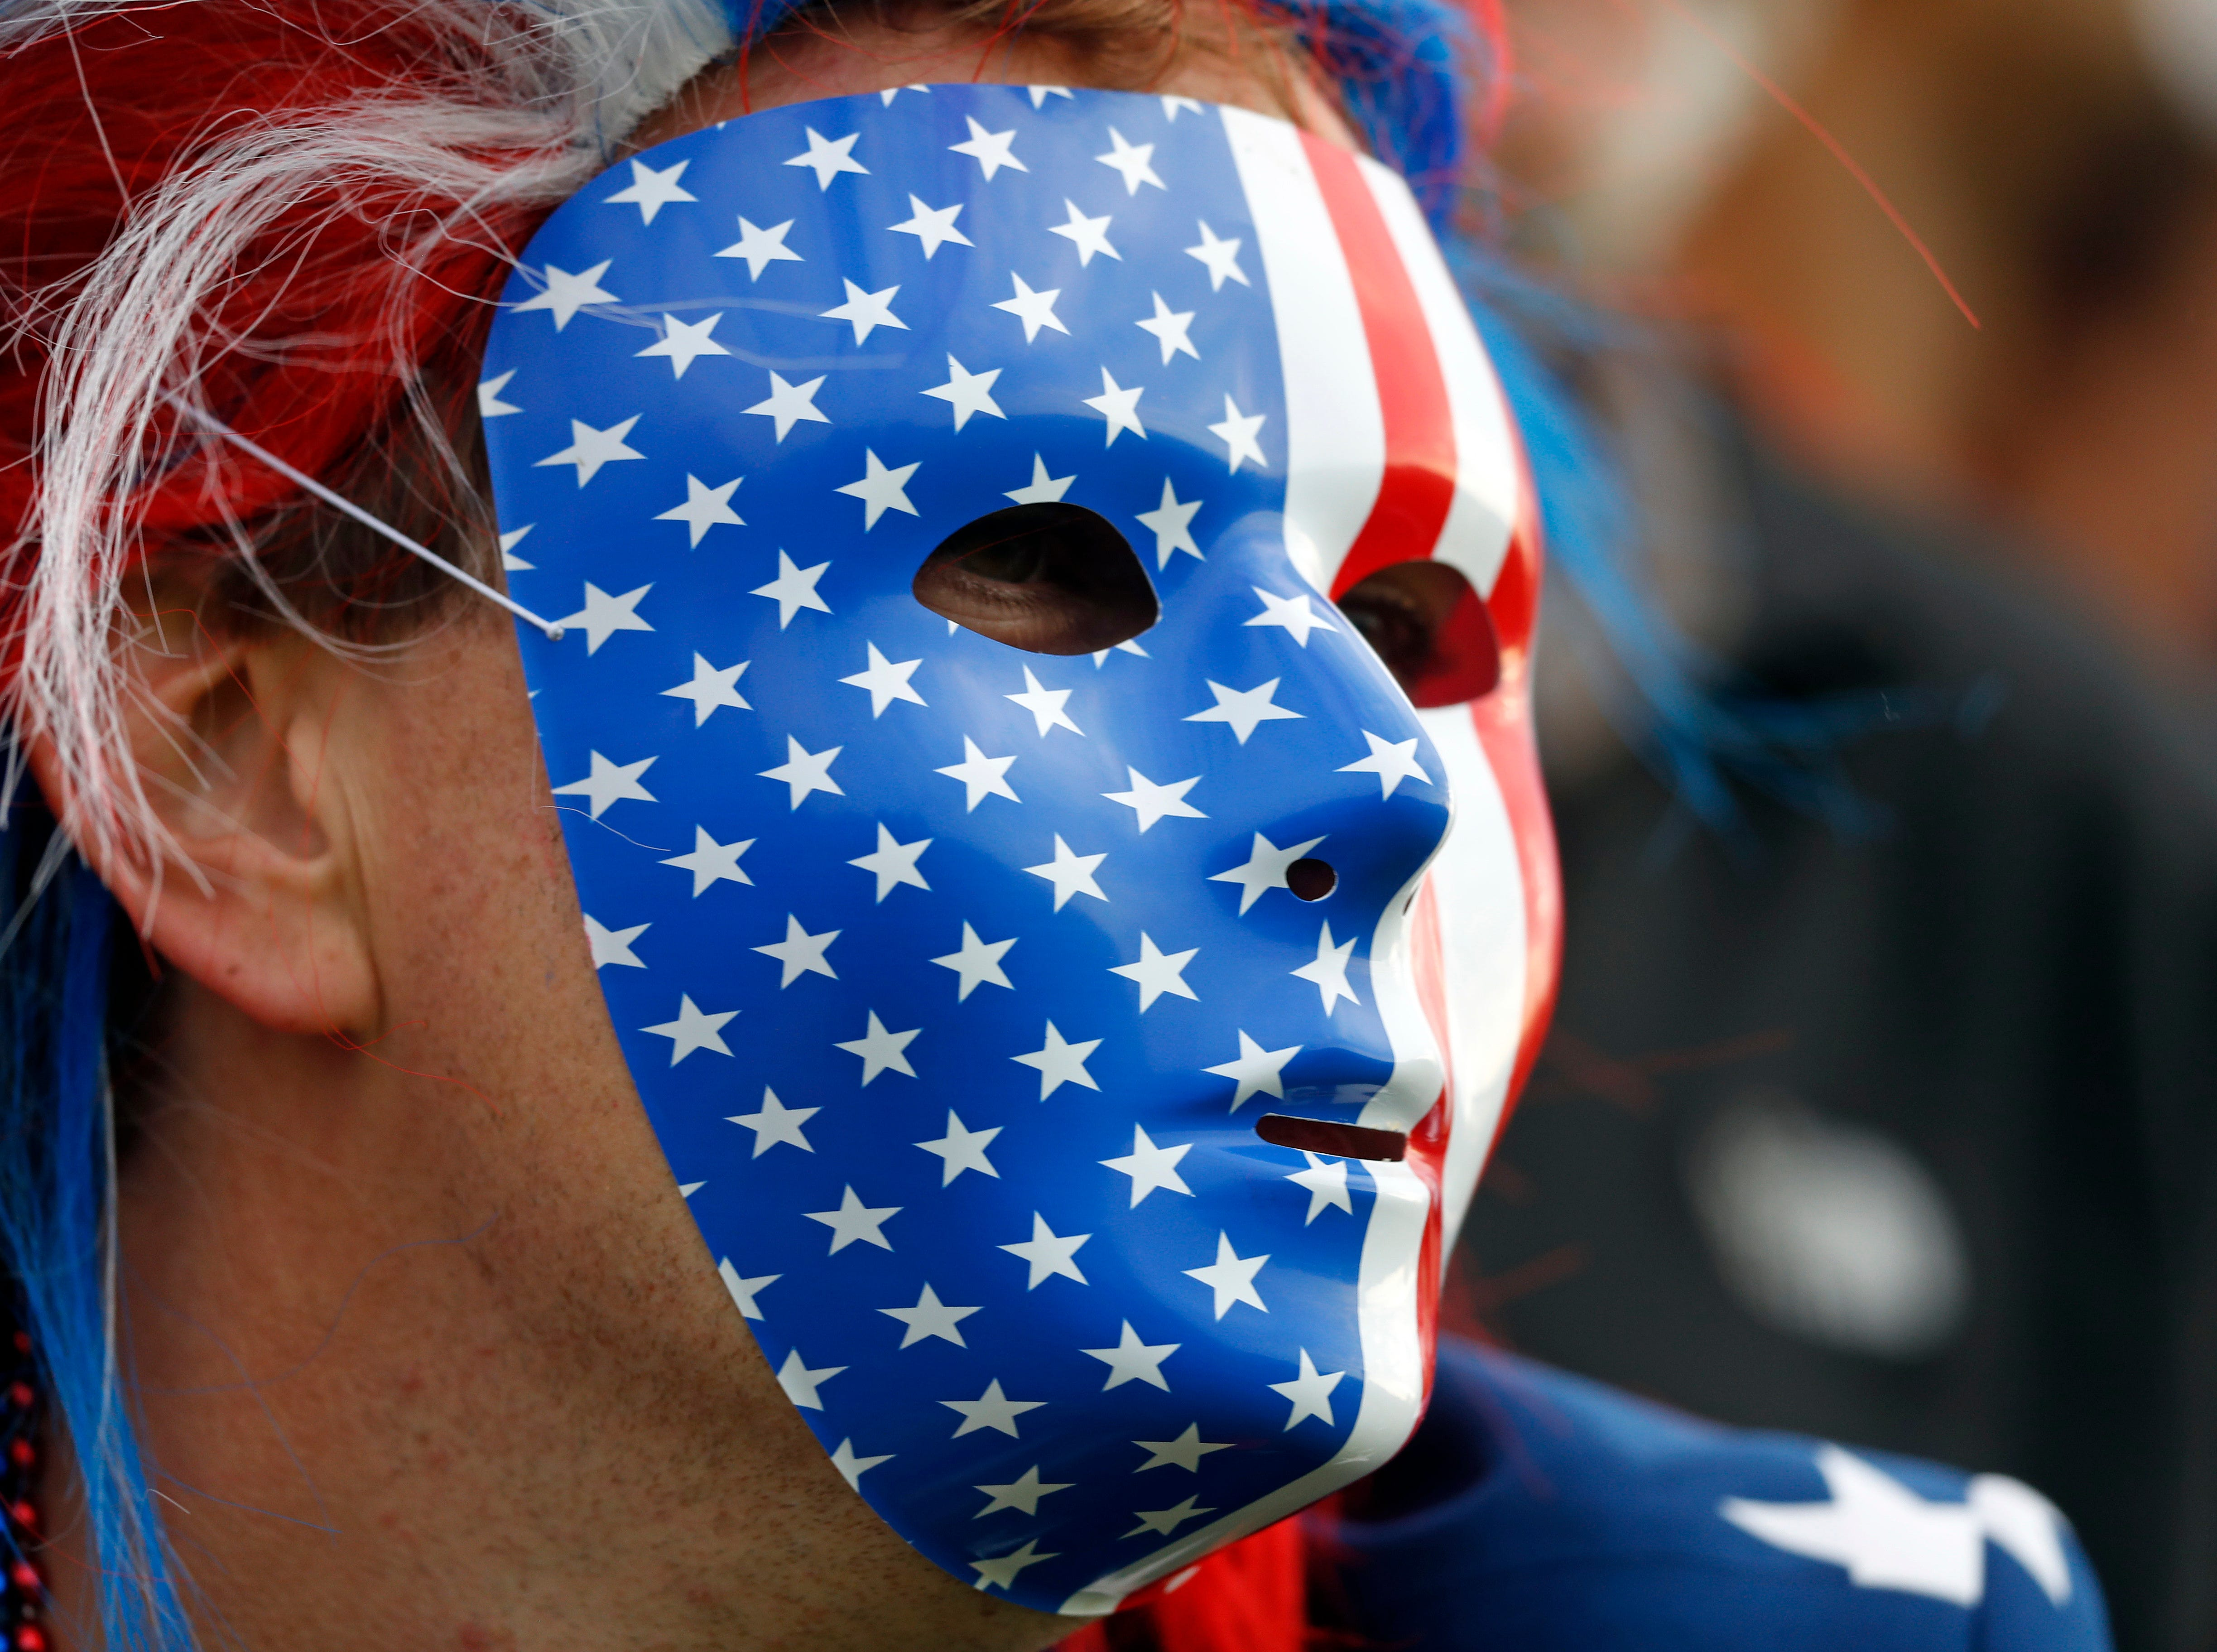 A US supporter watches on the opening day of the 42nd Ryder Cup at Le Golf National in Saint-Quentin-en-Yvelines, outside Paris, on Sept. 28.